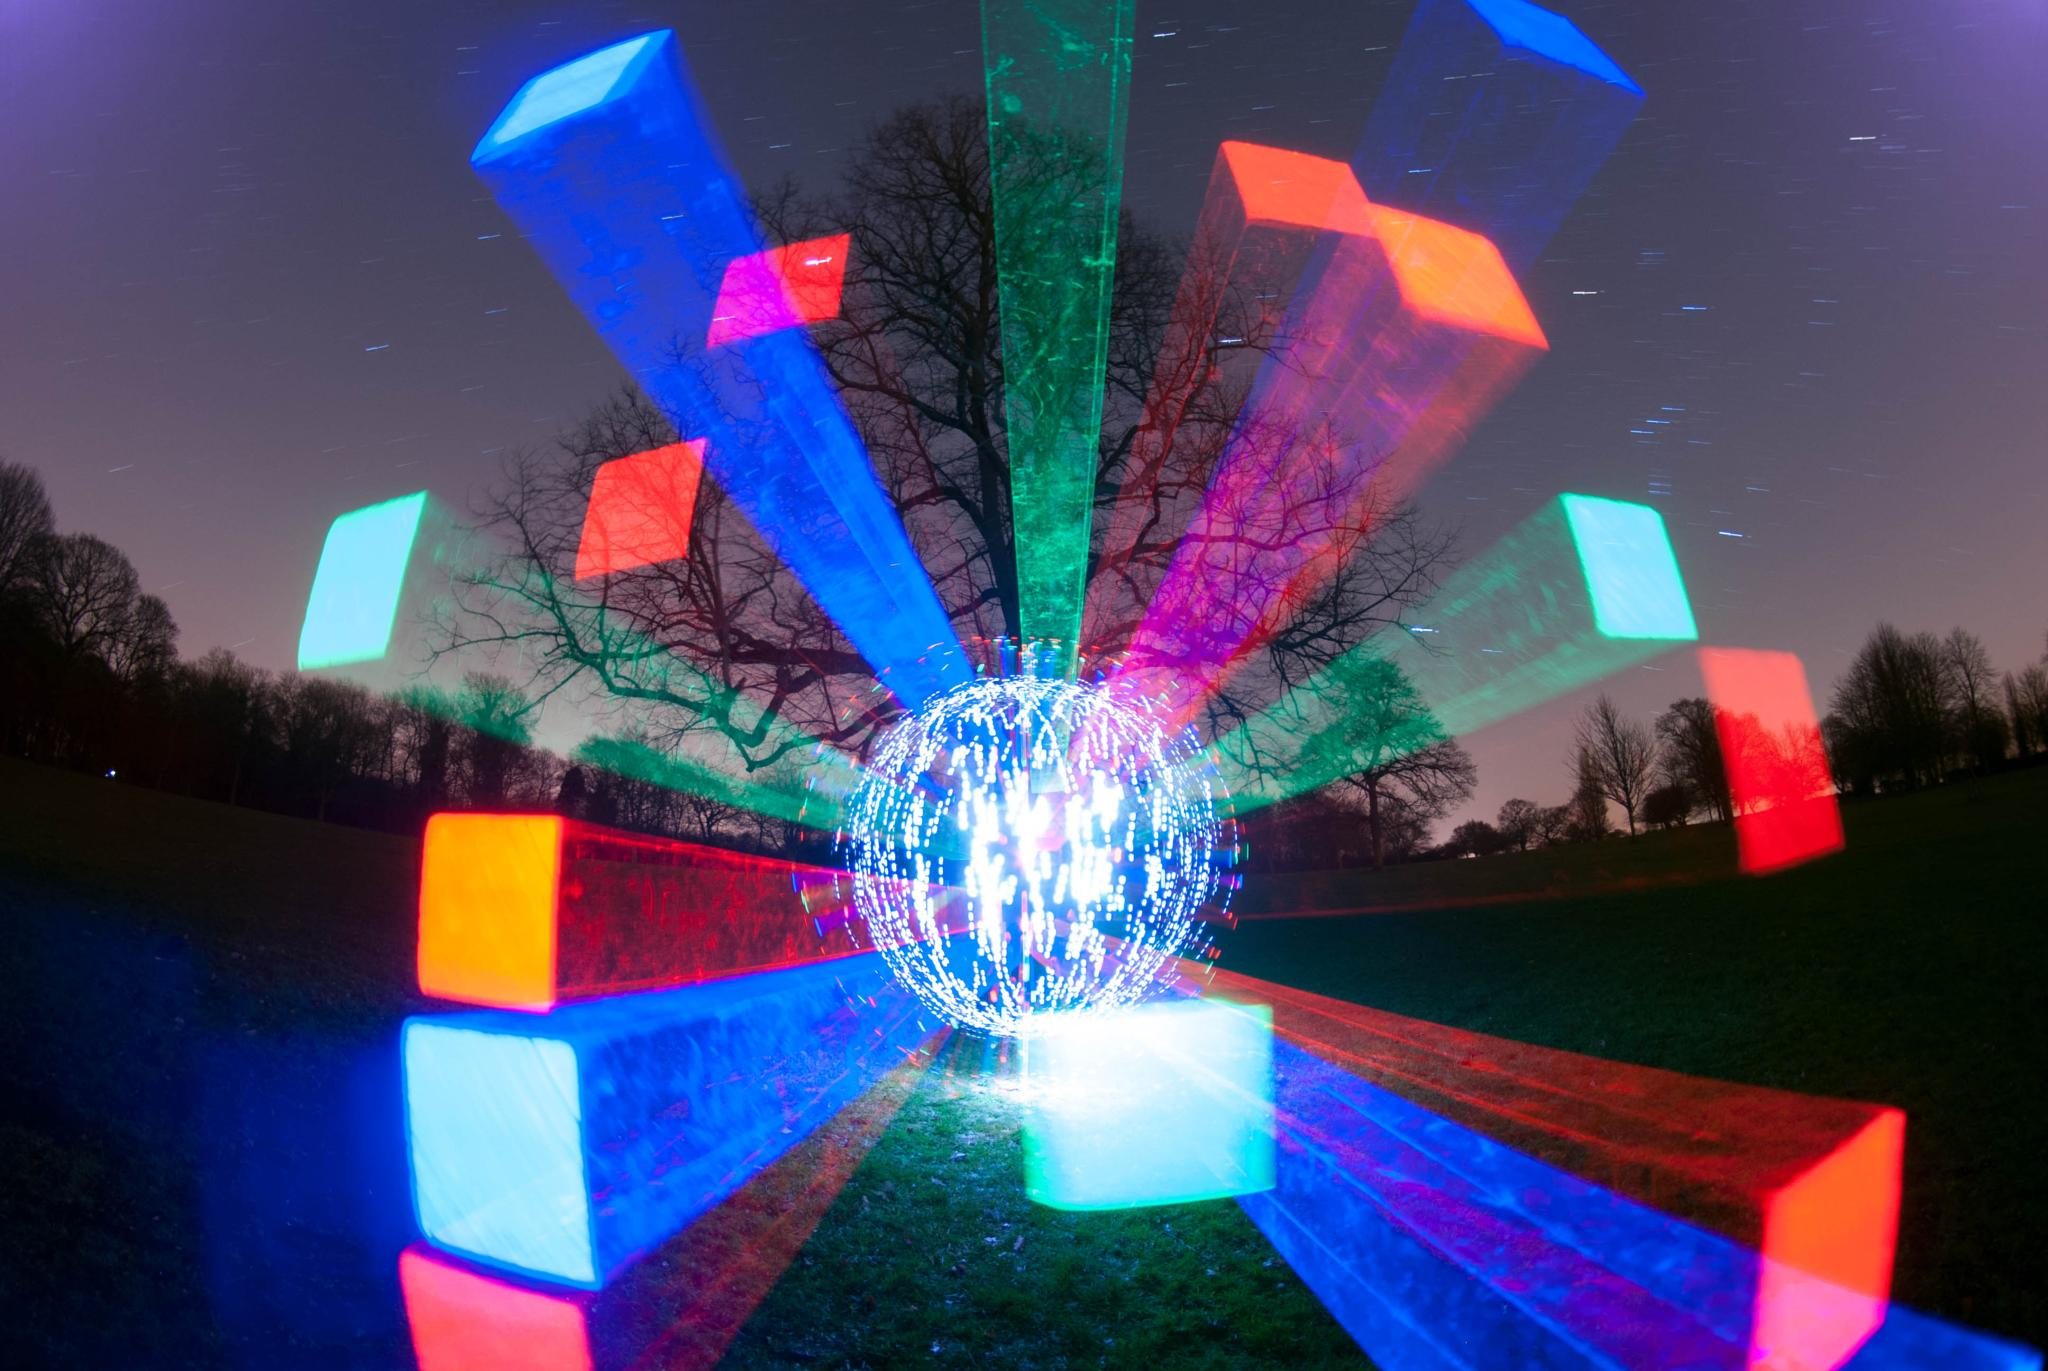 Open Shutter Exploding Orb Tecnique by JamesdeLunaLightpainting